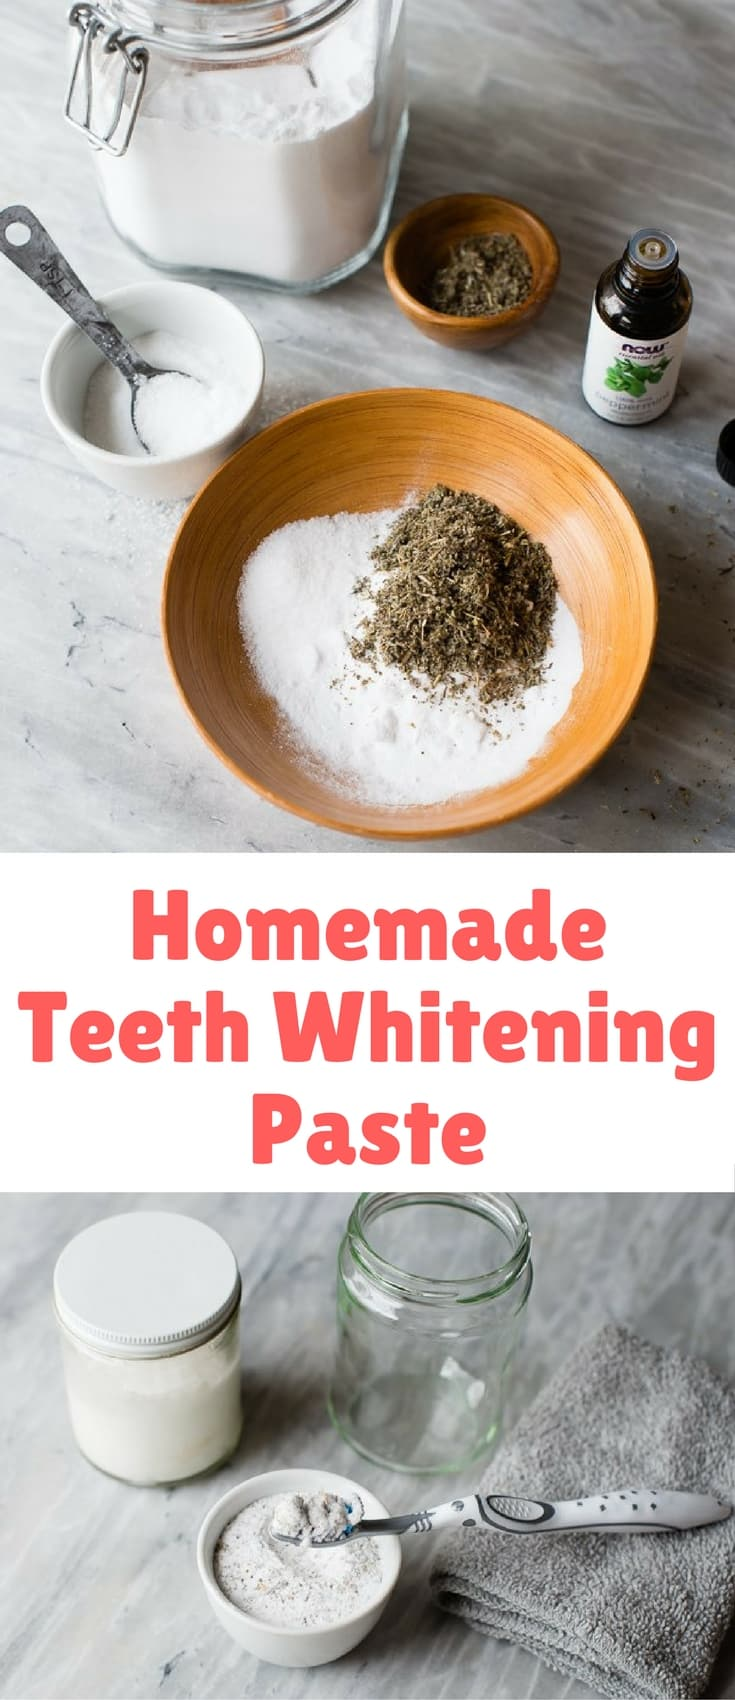 I love making my own natural toothpaste, so I decided to try adding some hydrogen peroxide for more natural teeth whitening benefits. I love it! The hydrogen peroxide paste kills two birds with one stone and works great, too.